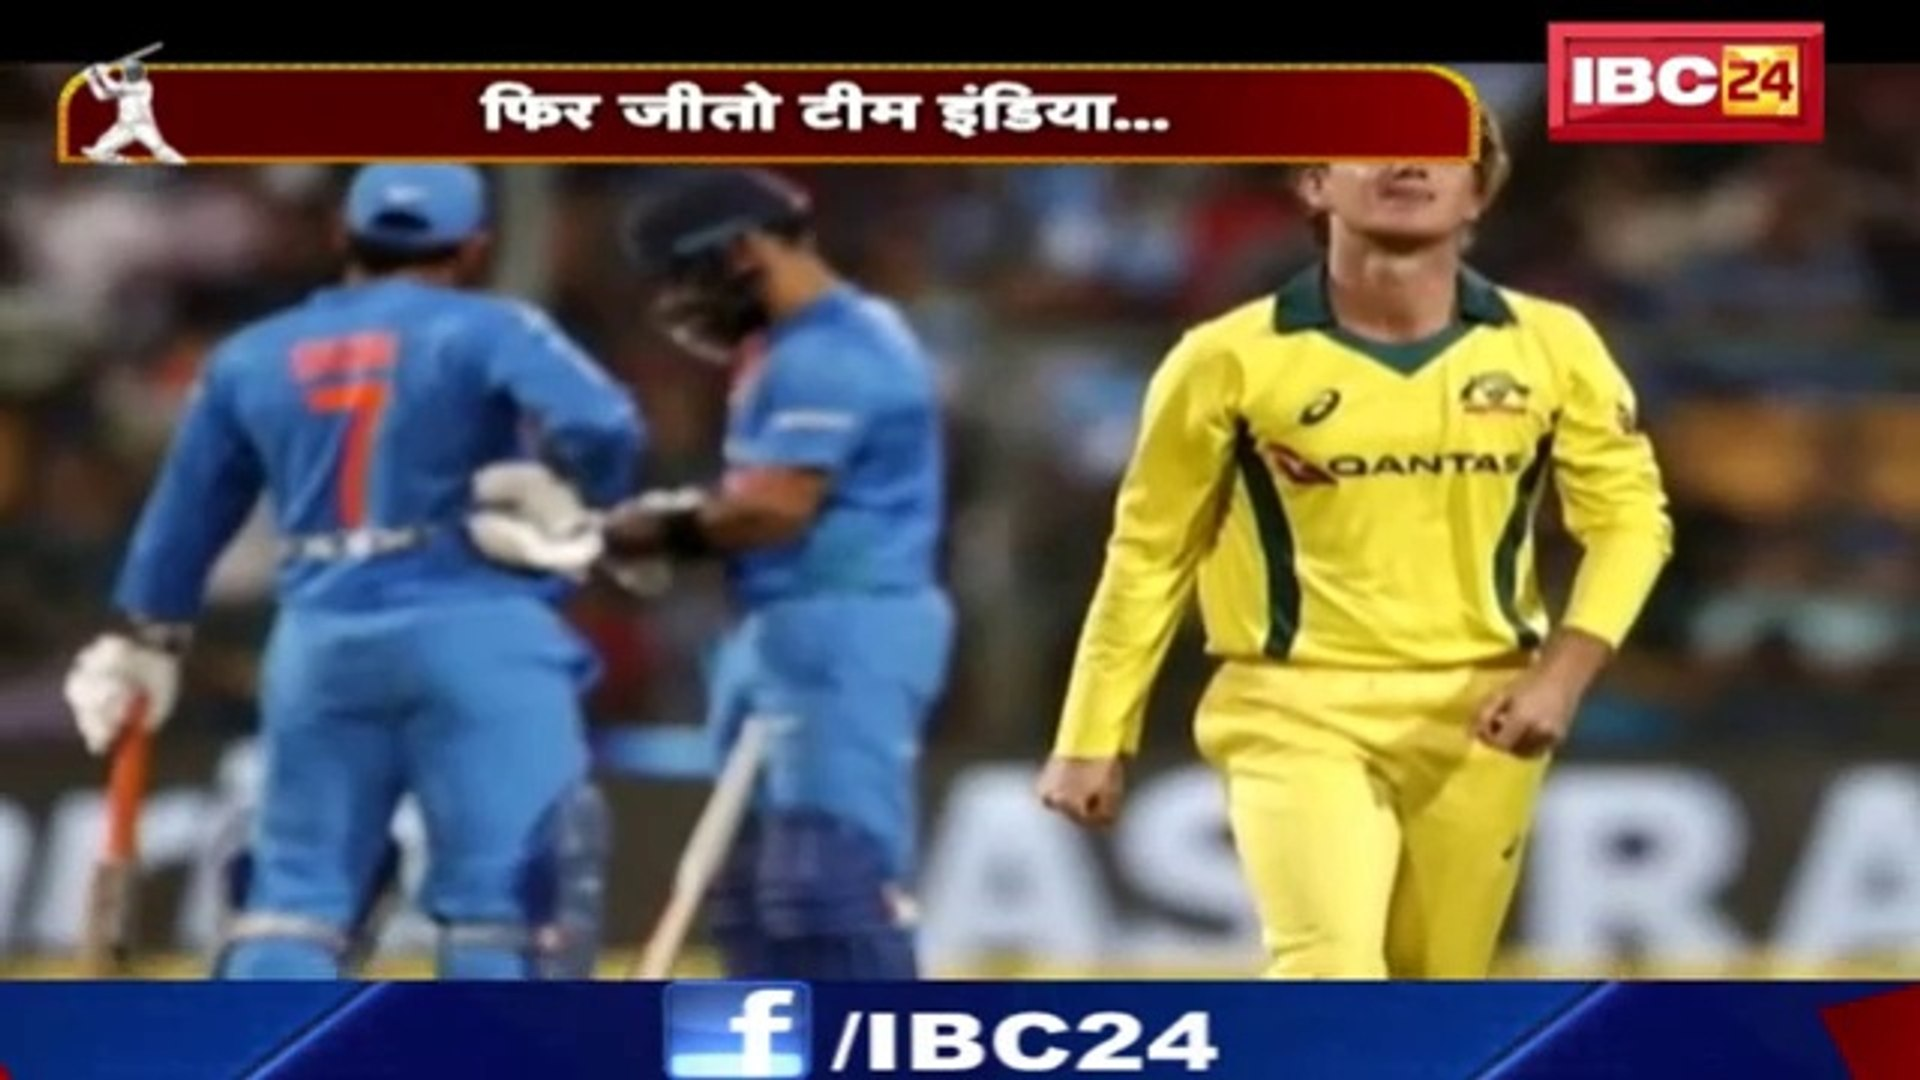 ICC World Cup 2019 Full Highlights -India vs Australia- Full Match Highlights Today Team India -LIVE